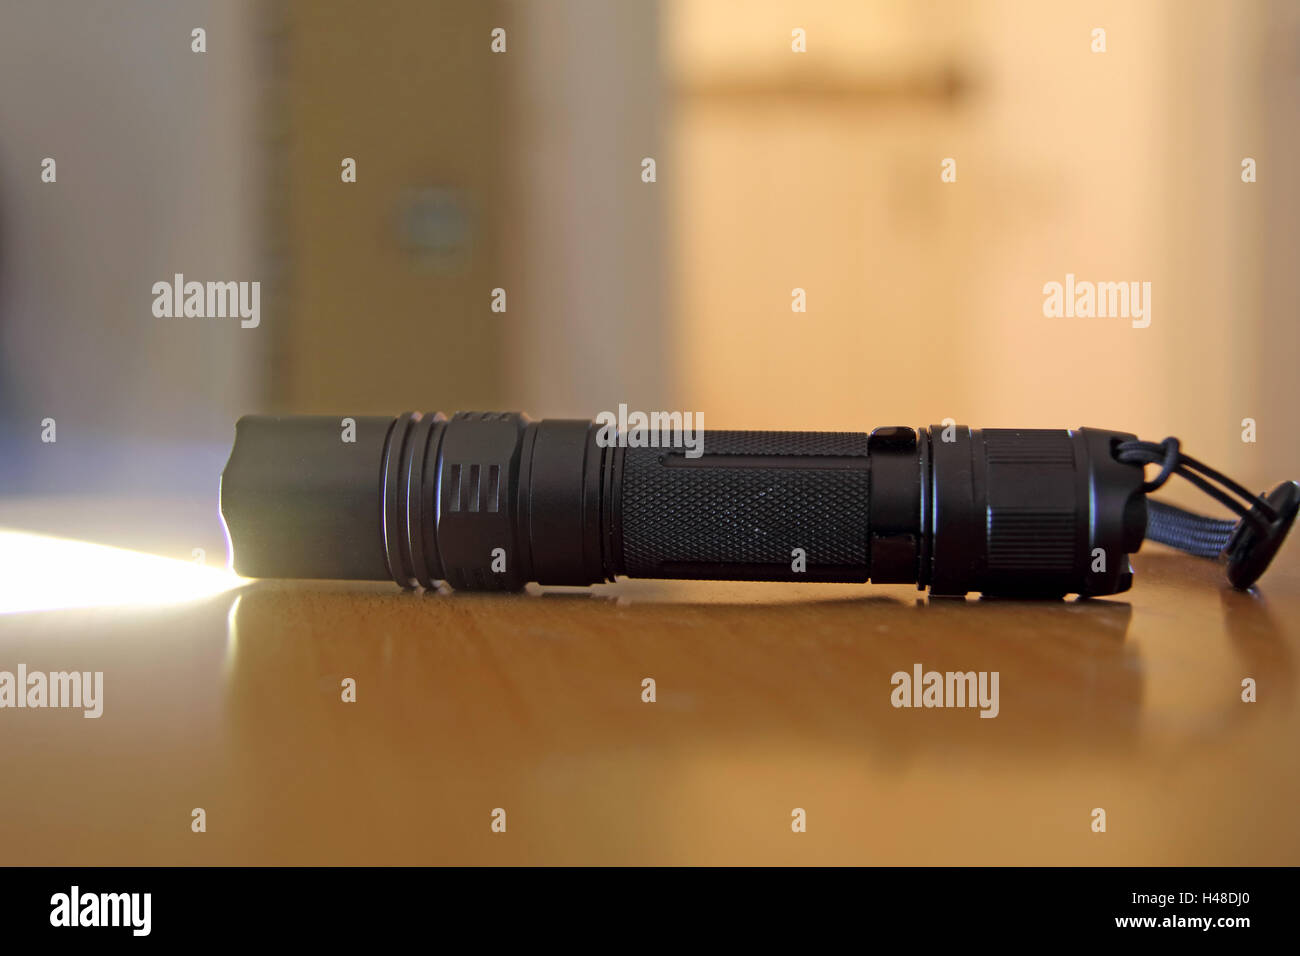 LED Flashlight - Stock Image